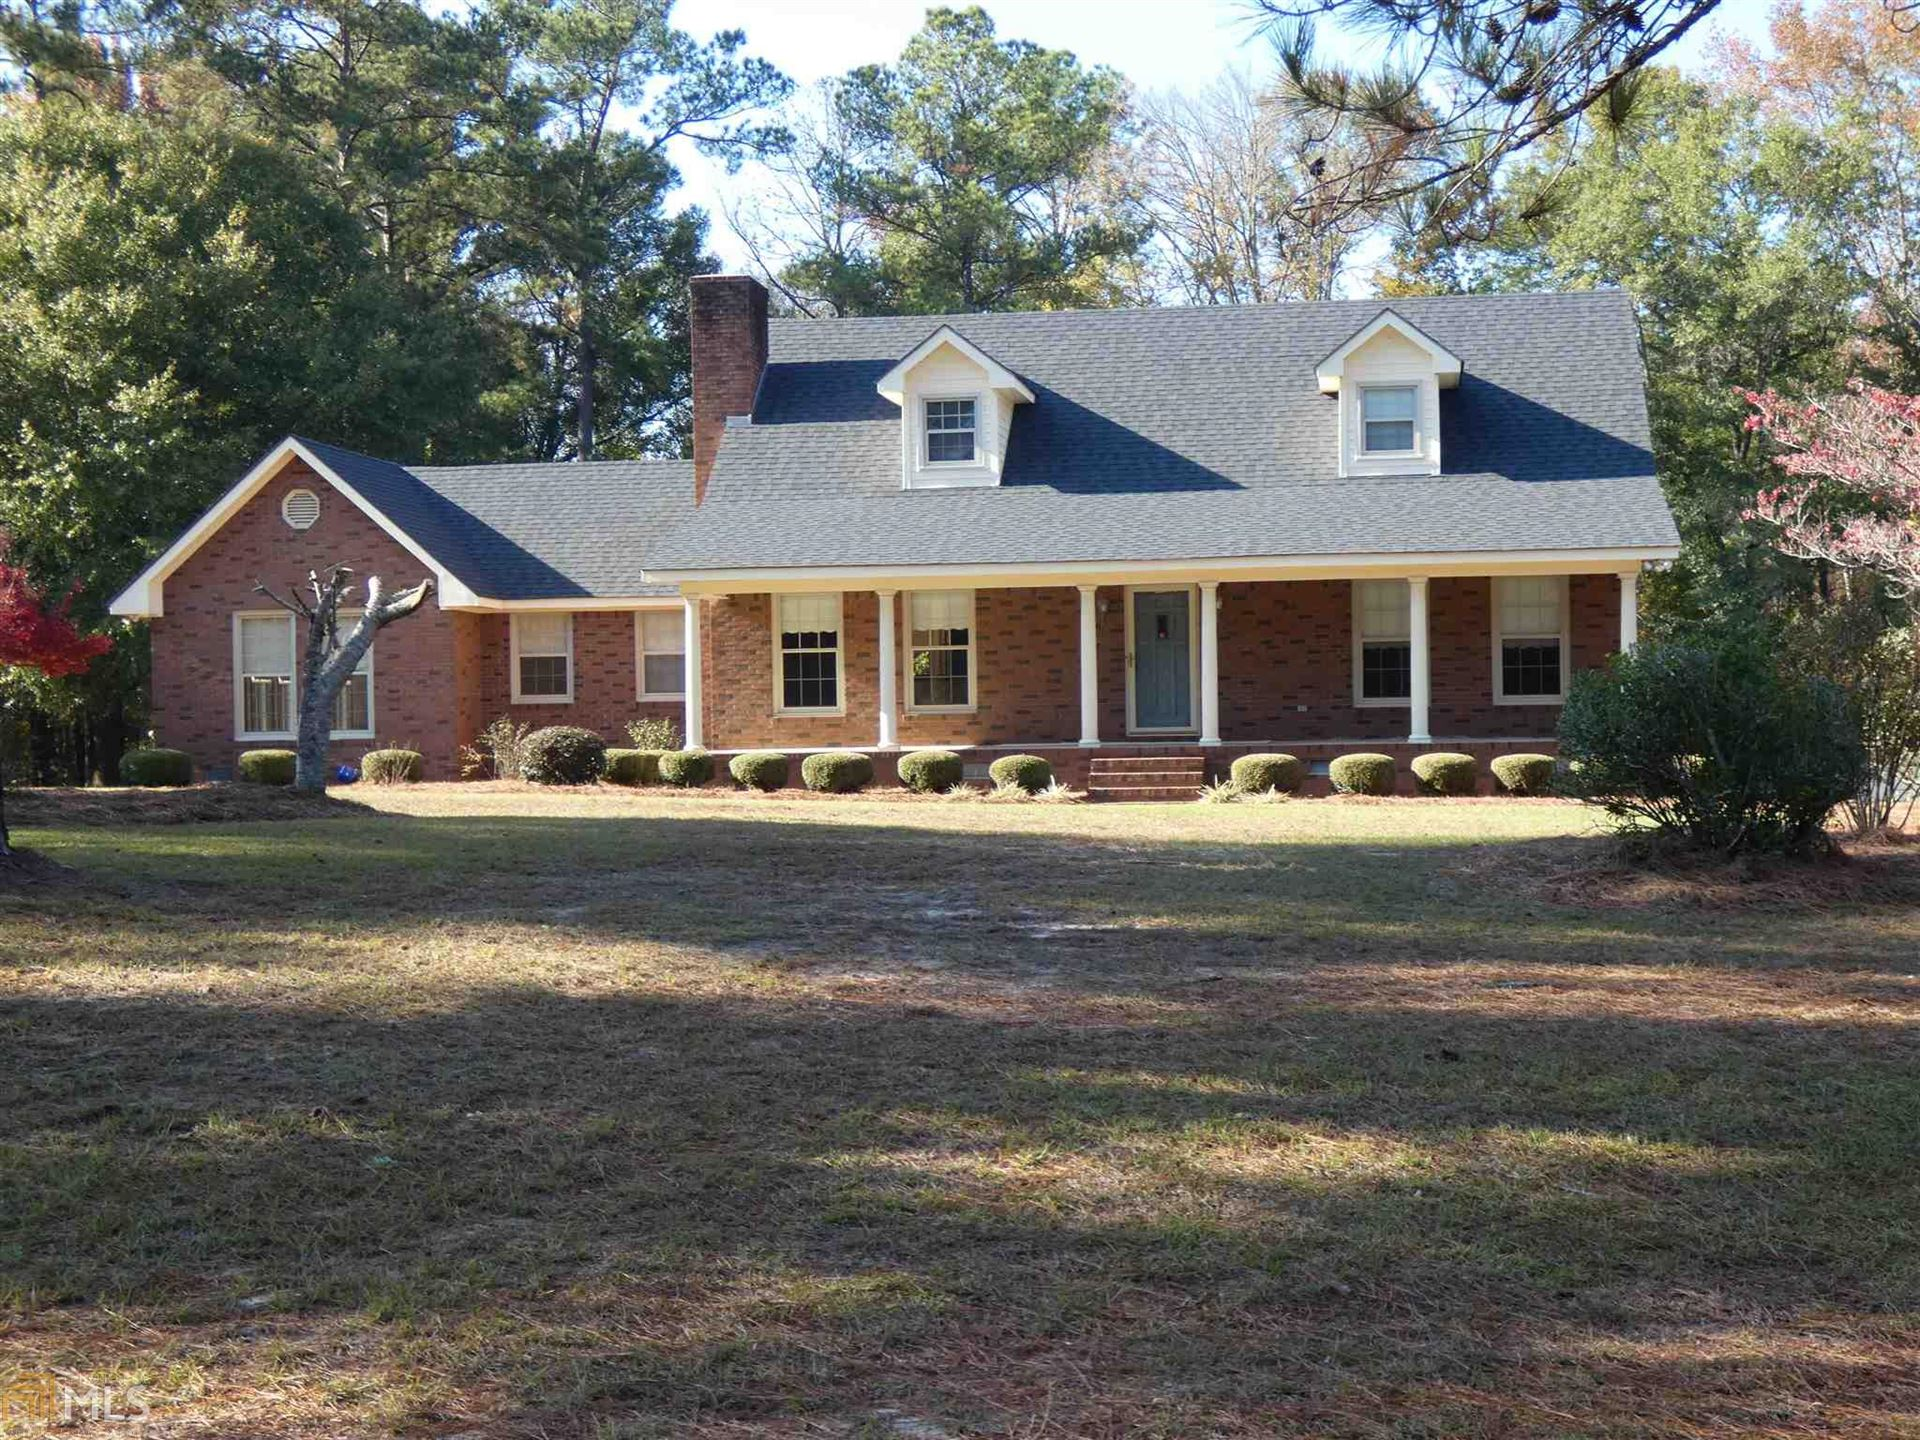 Photo of 113 Pine Ridge St, Tennille, GA 31089 (MLS # 8697253)